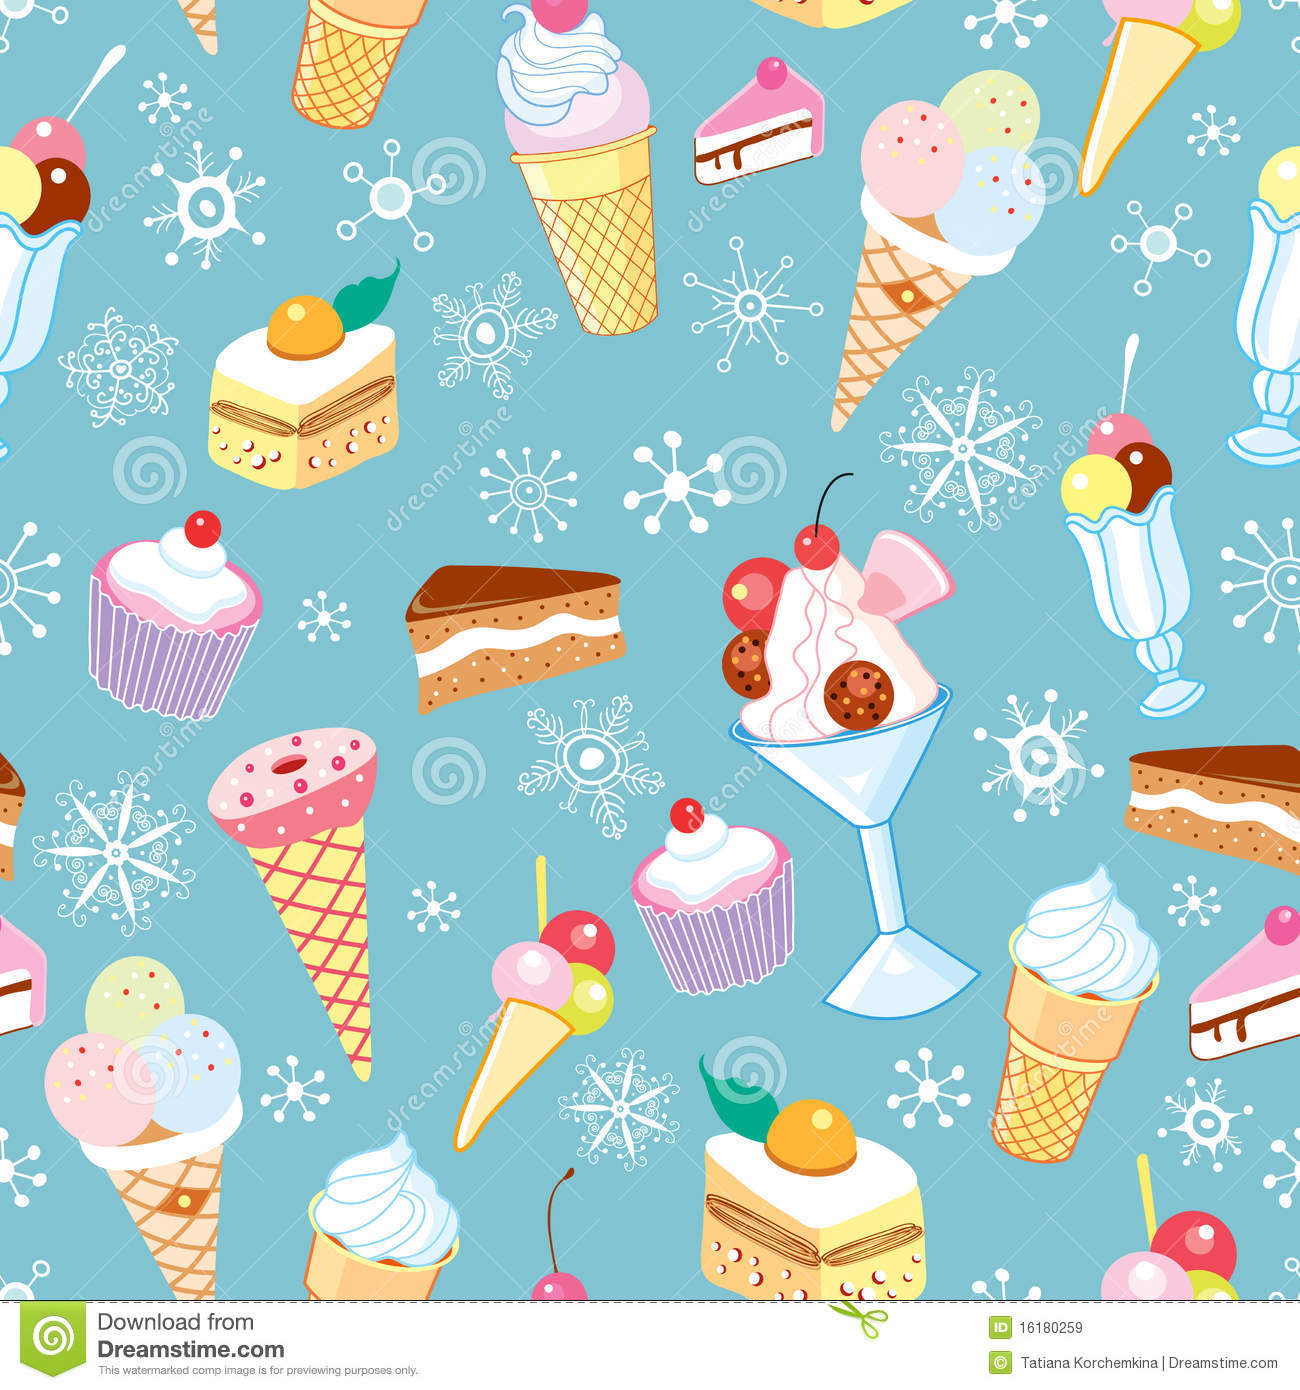 Seamless Ice Cream Wallpaper Royalty Free Stock Images